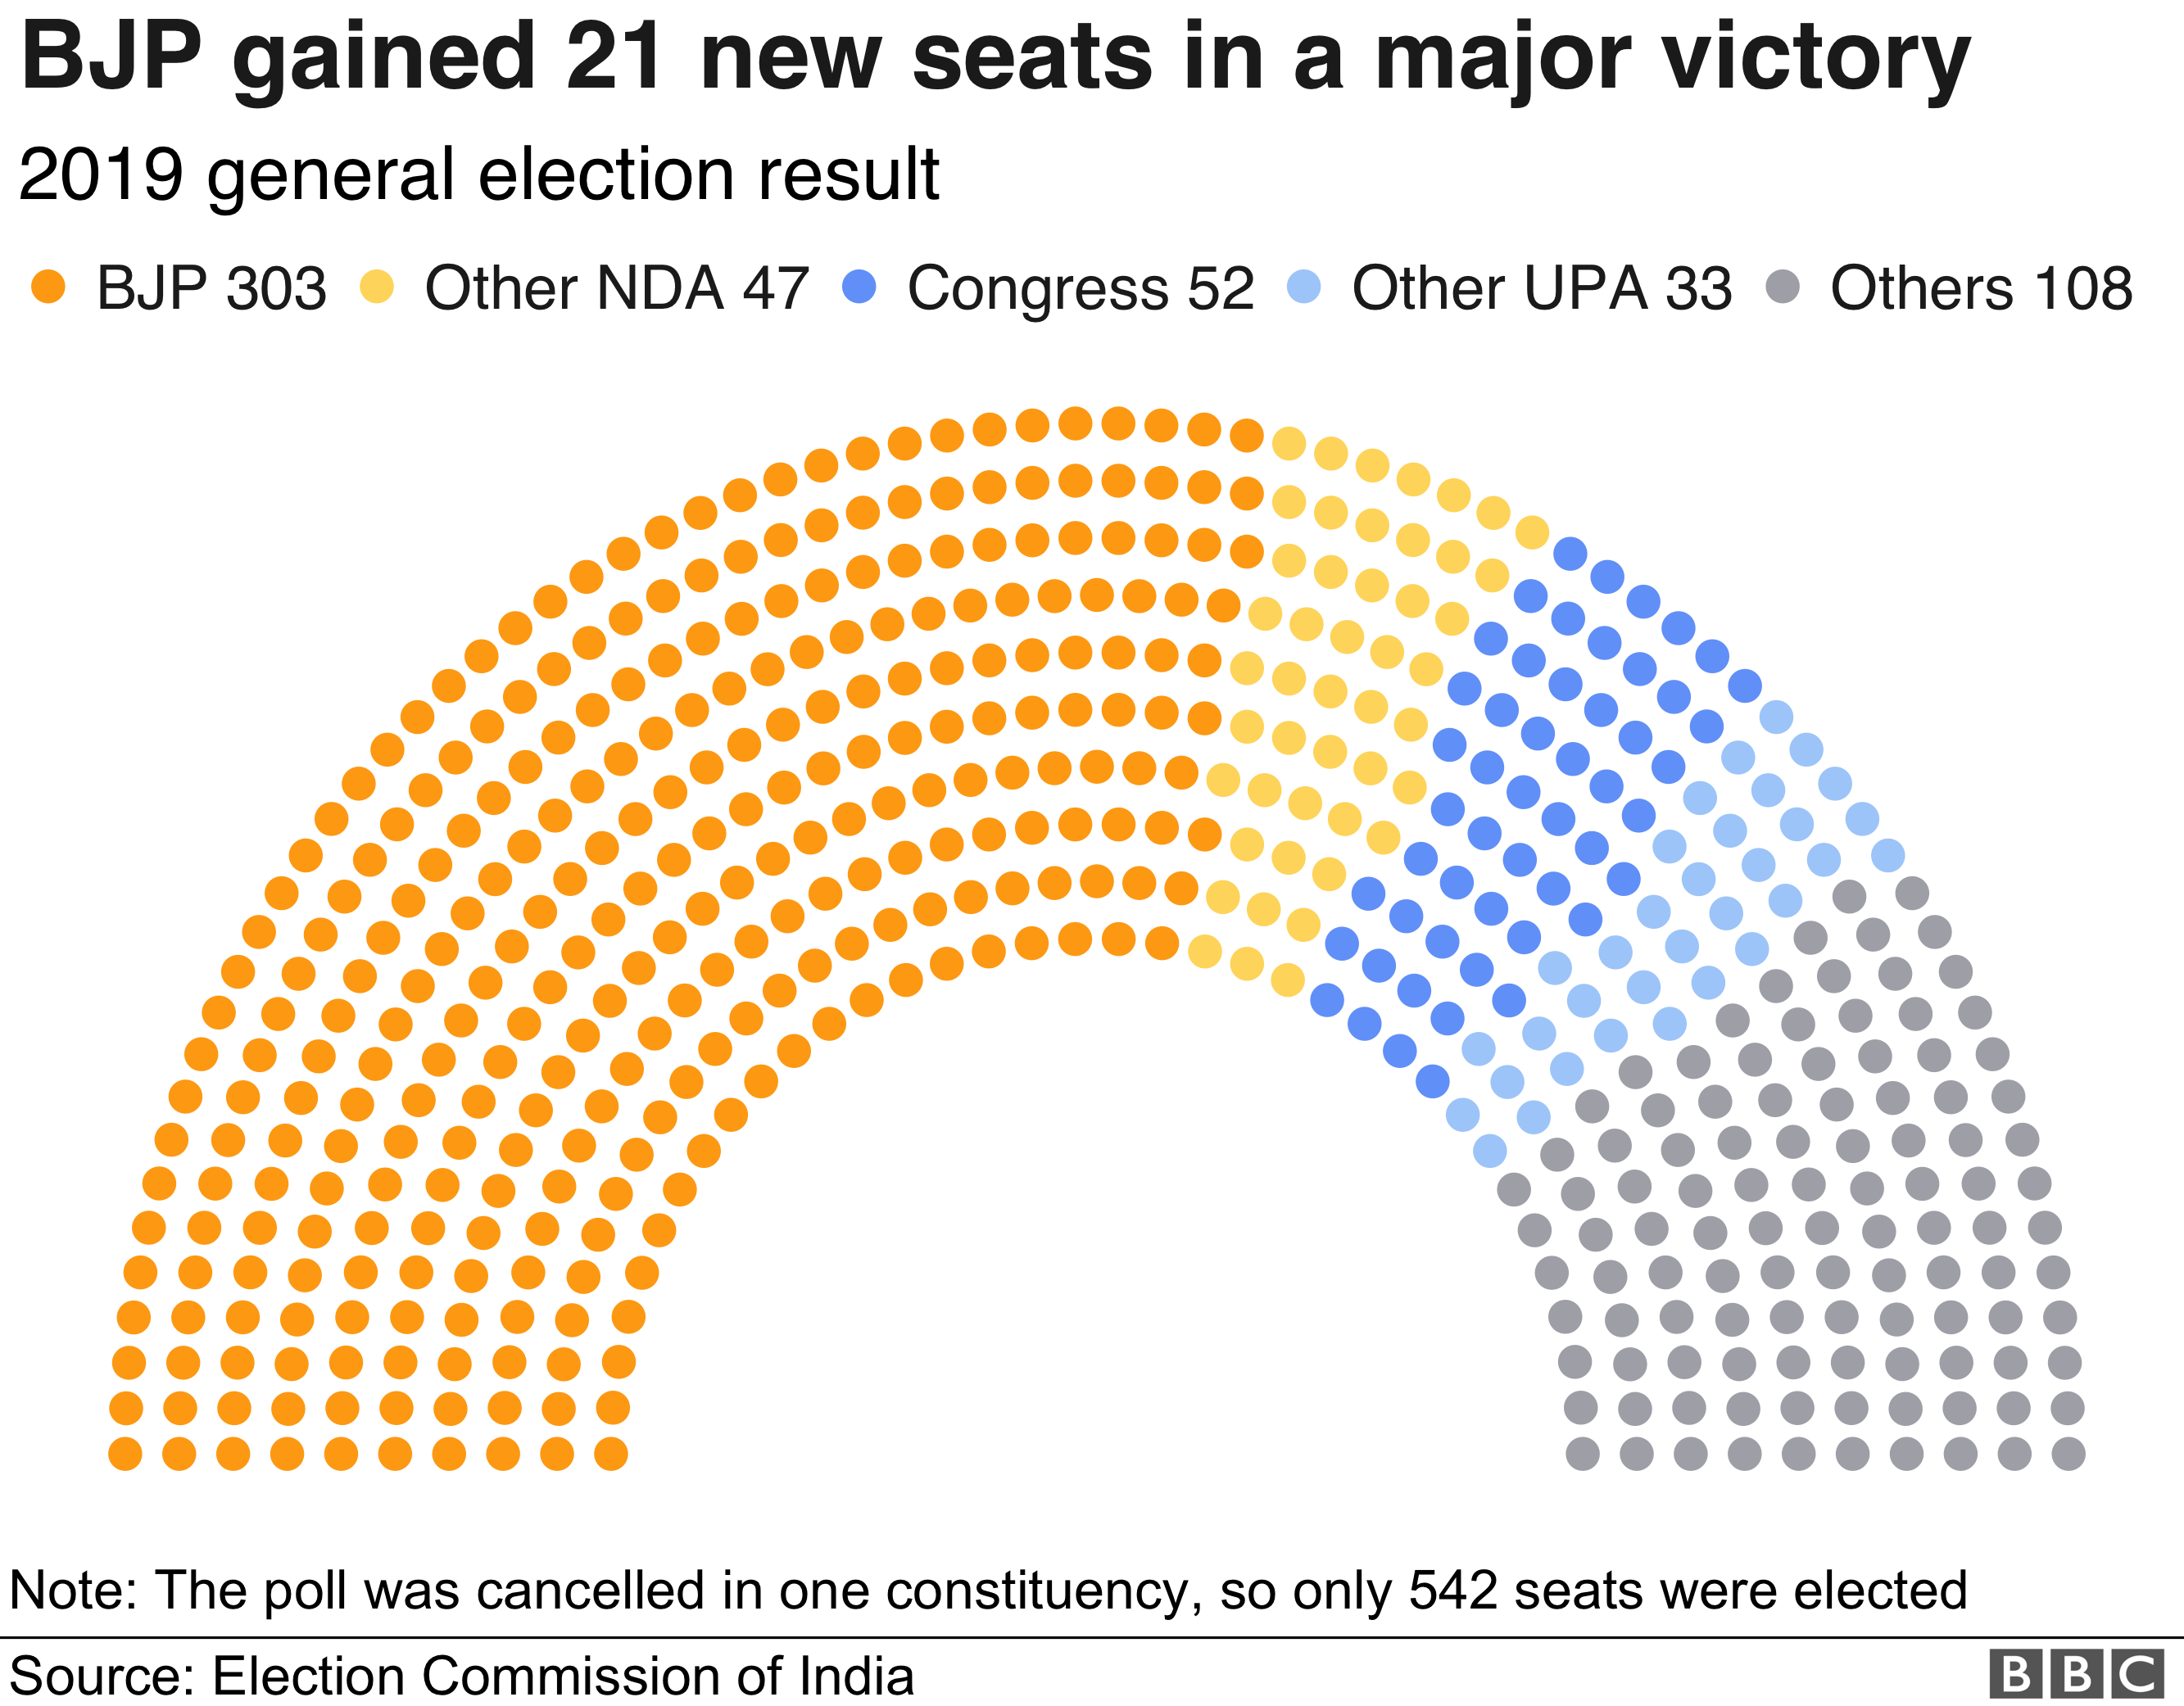 Election results graphic showing BJP victory